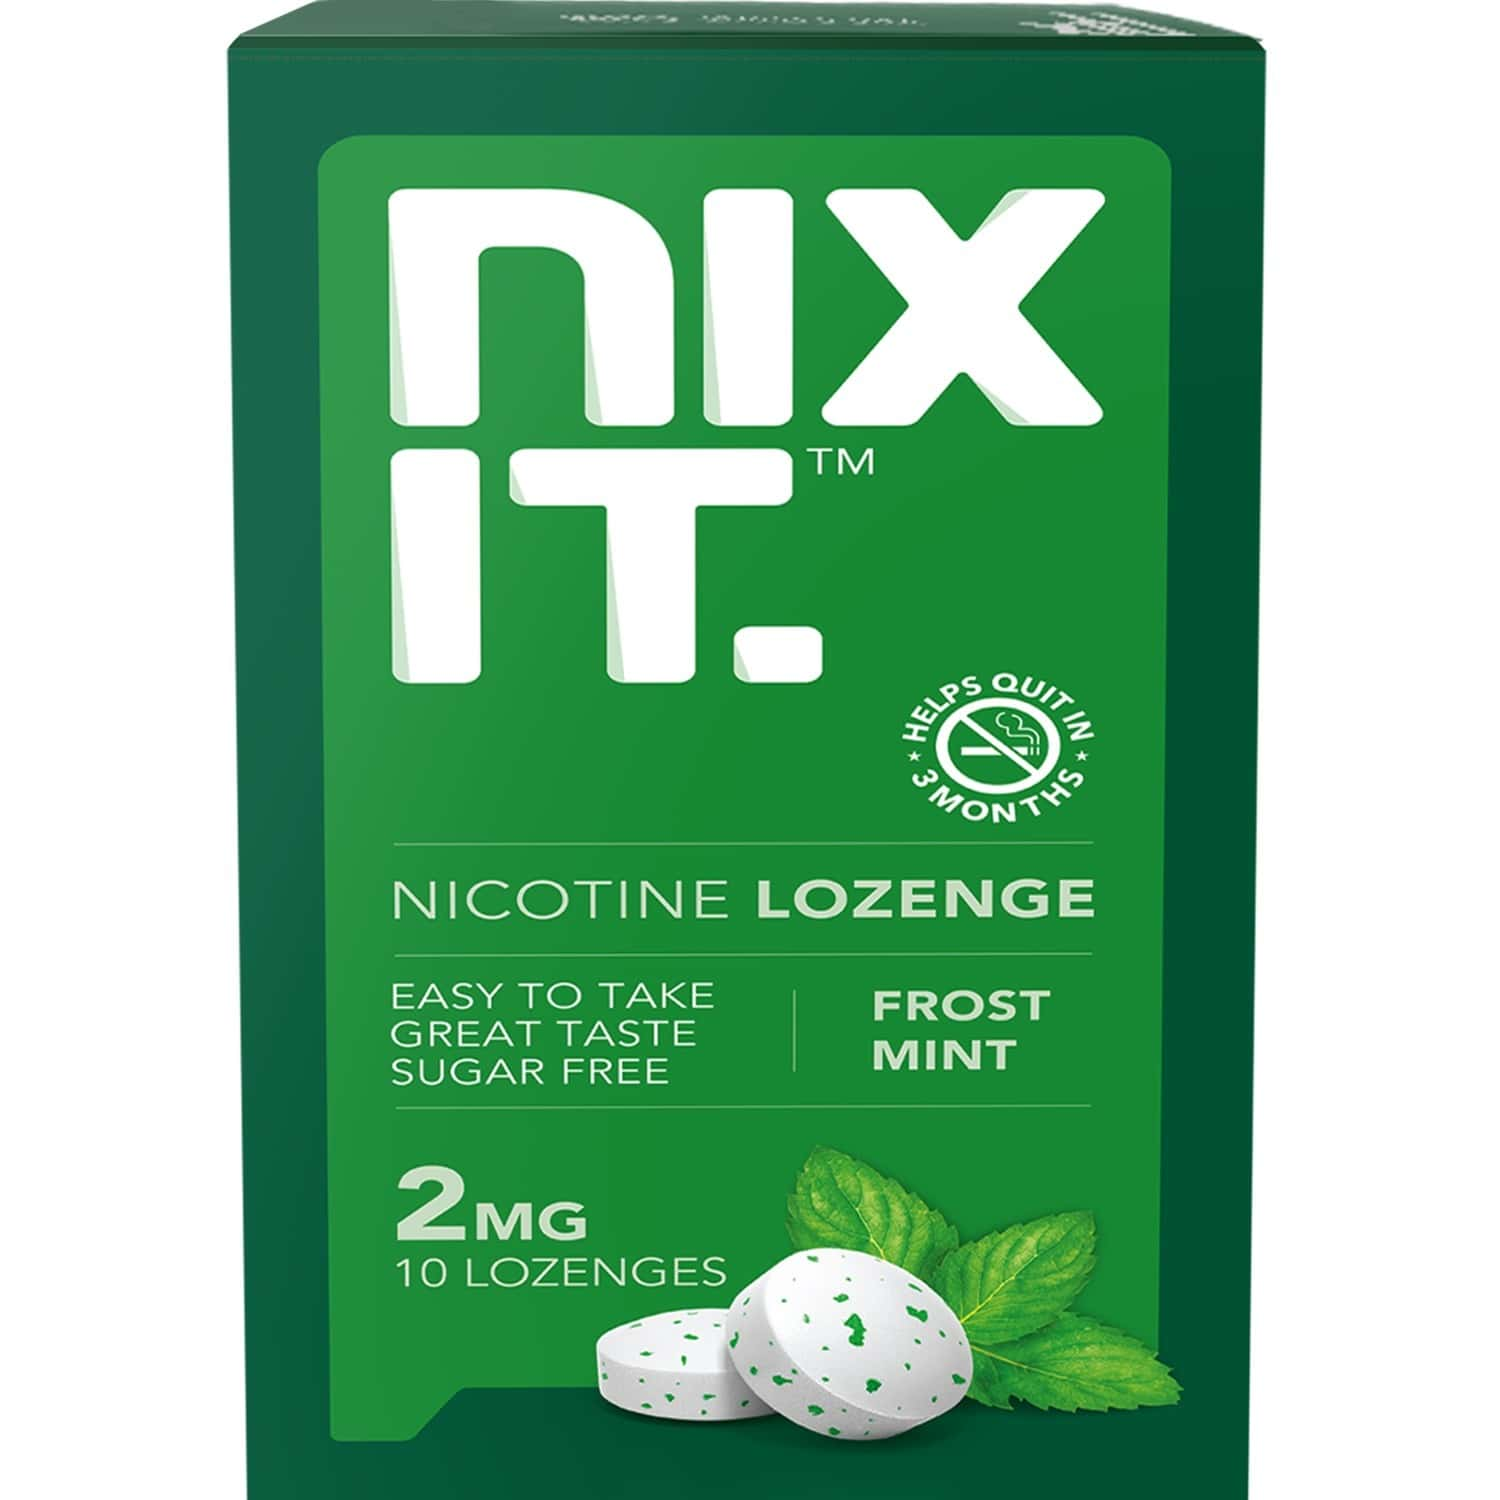 Nixit Nicotine Frost Mint Lozenges 2mg, Sugar Free (pack Of 20) - Helps Quit Smoking